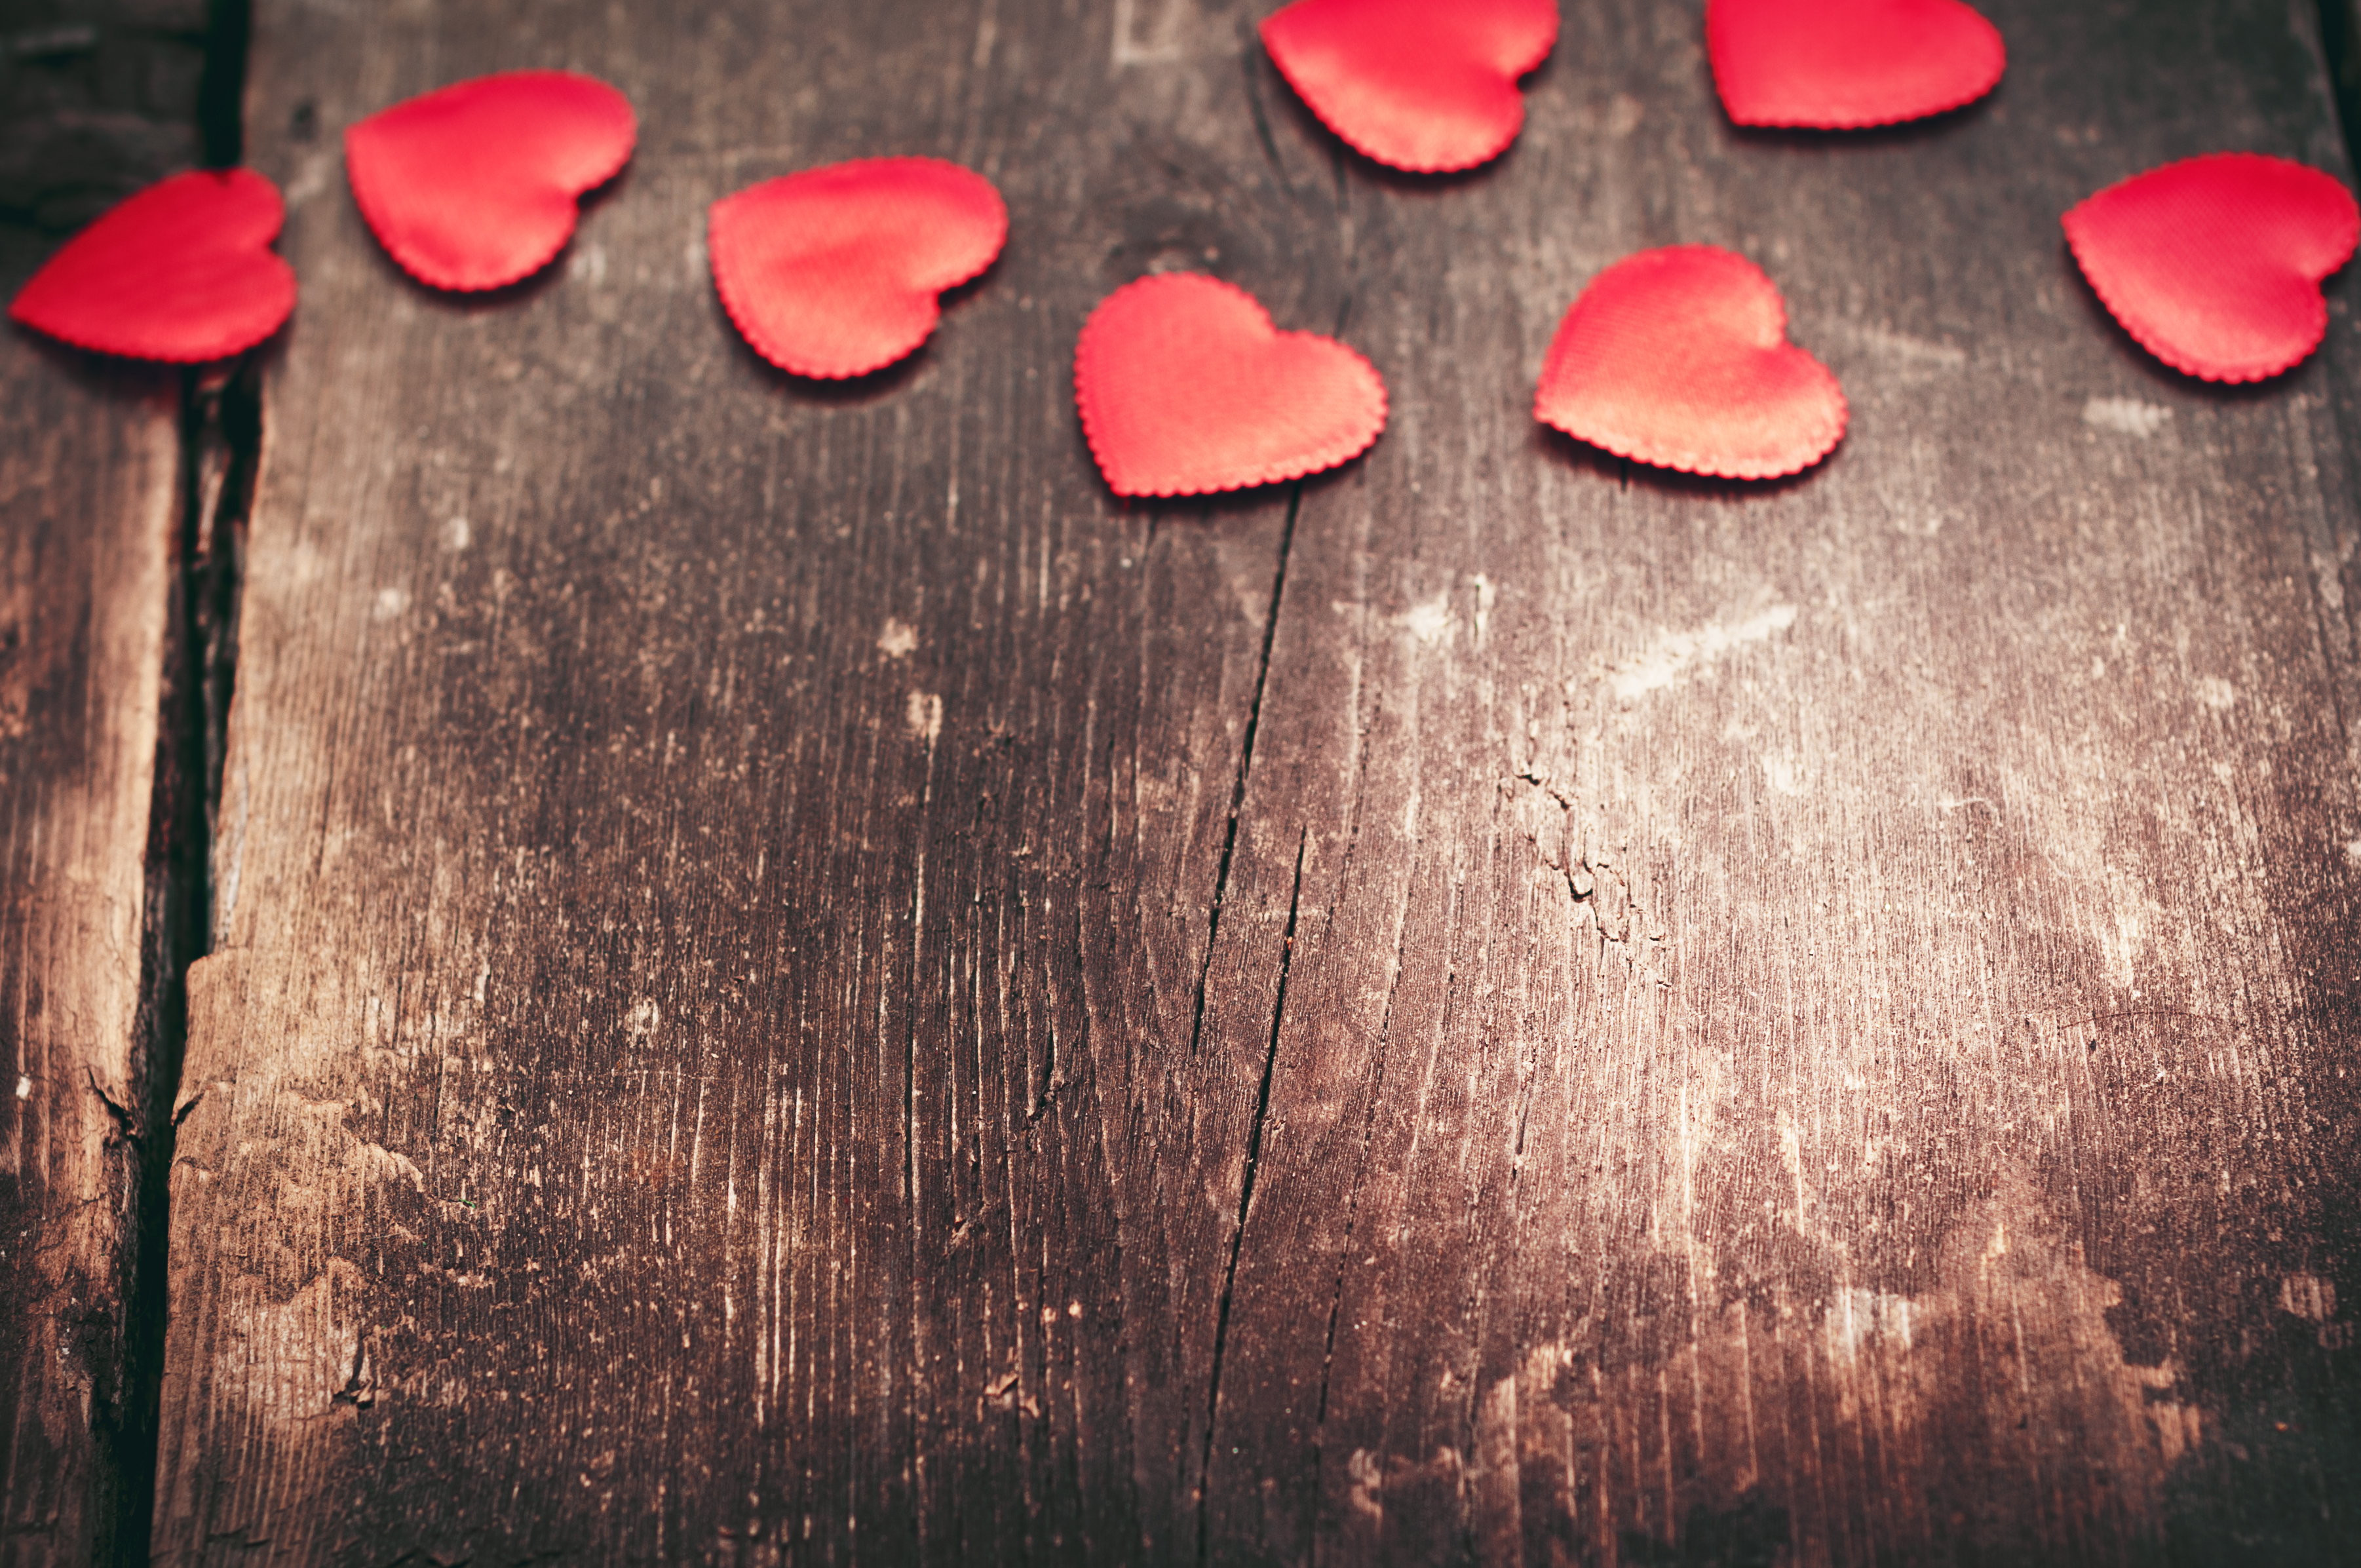 A Wined Write Valentines - Love Conquers All ... or does it? Creative Writing Workshop - 02-07-2019